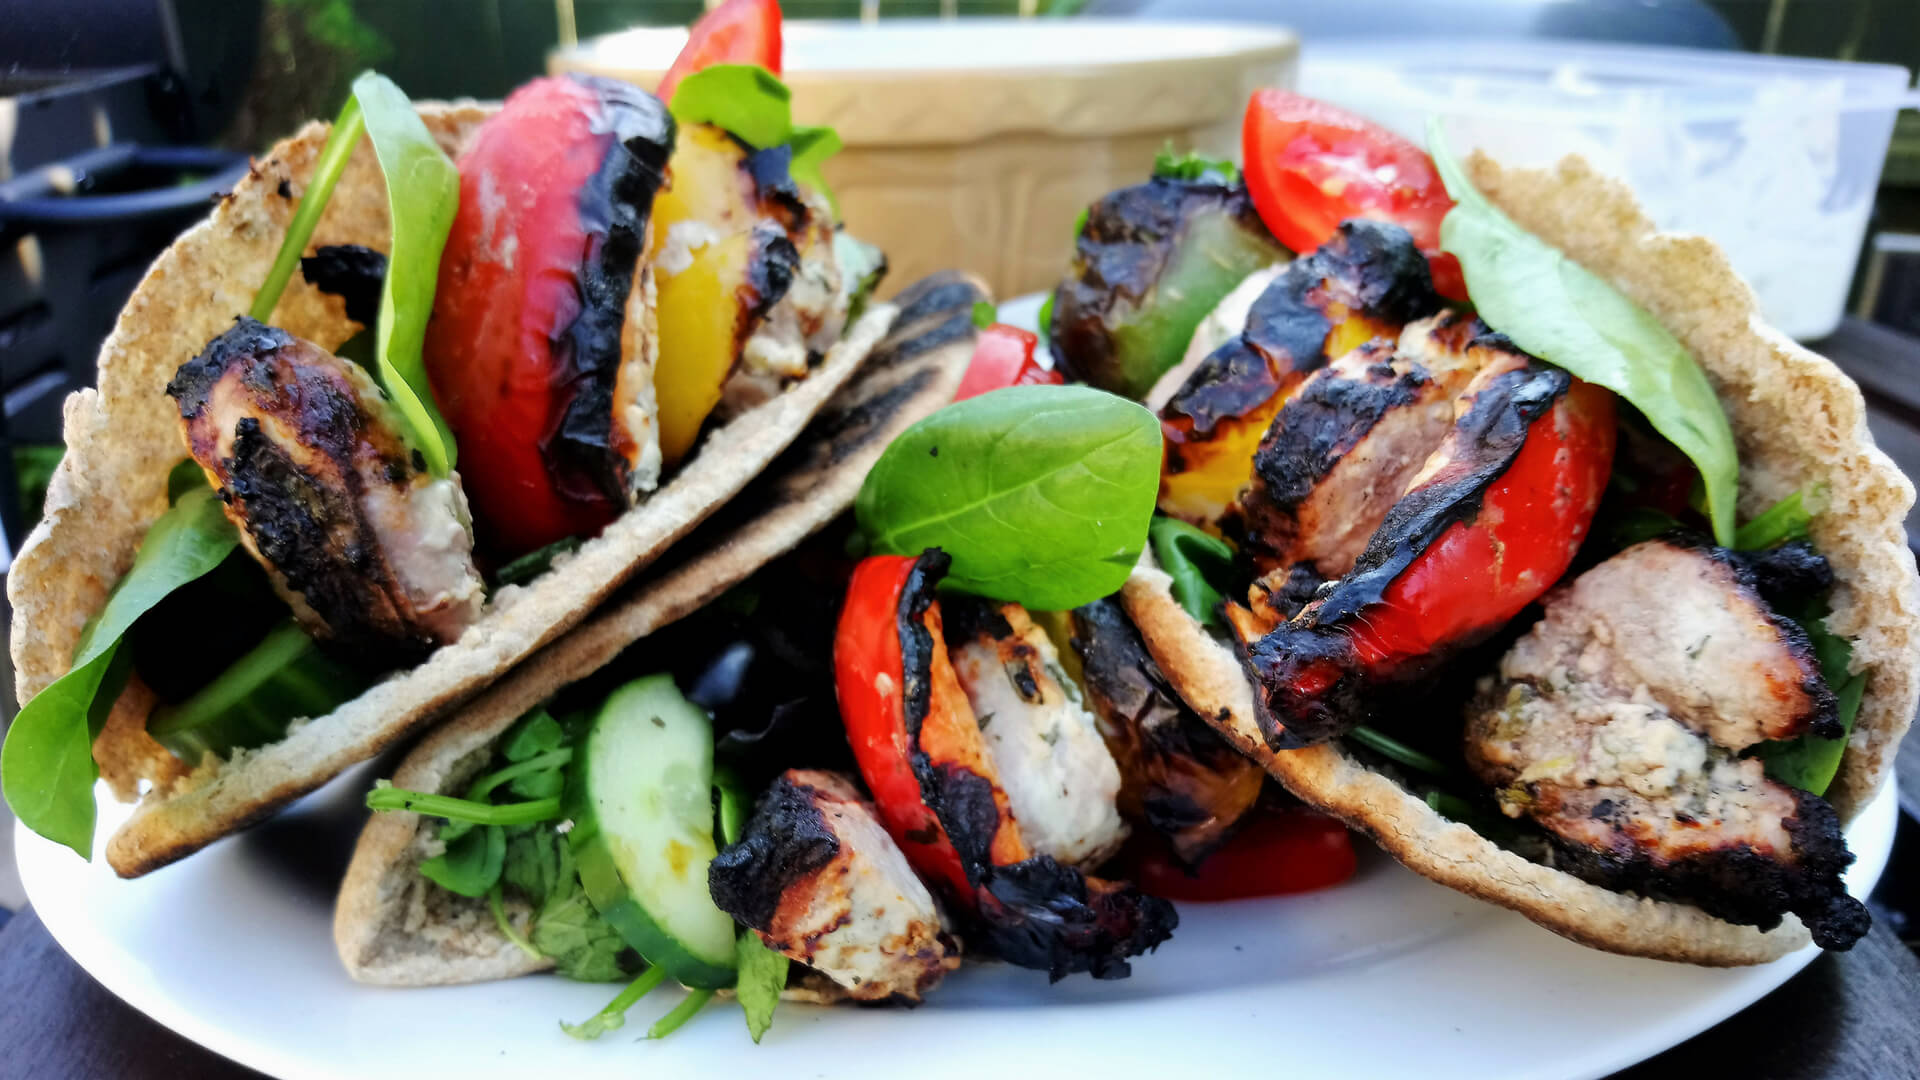 Grilled pork souvla in pita bread